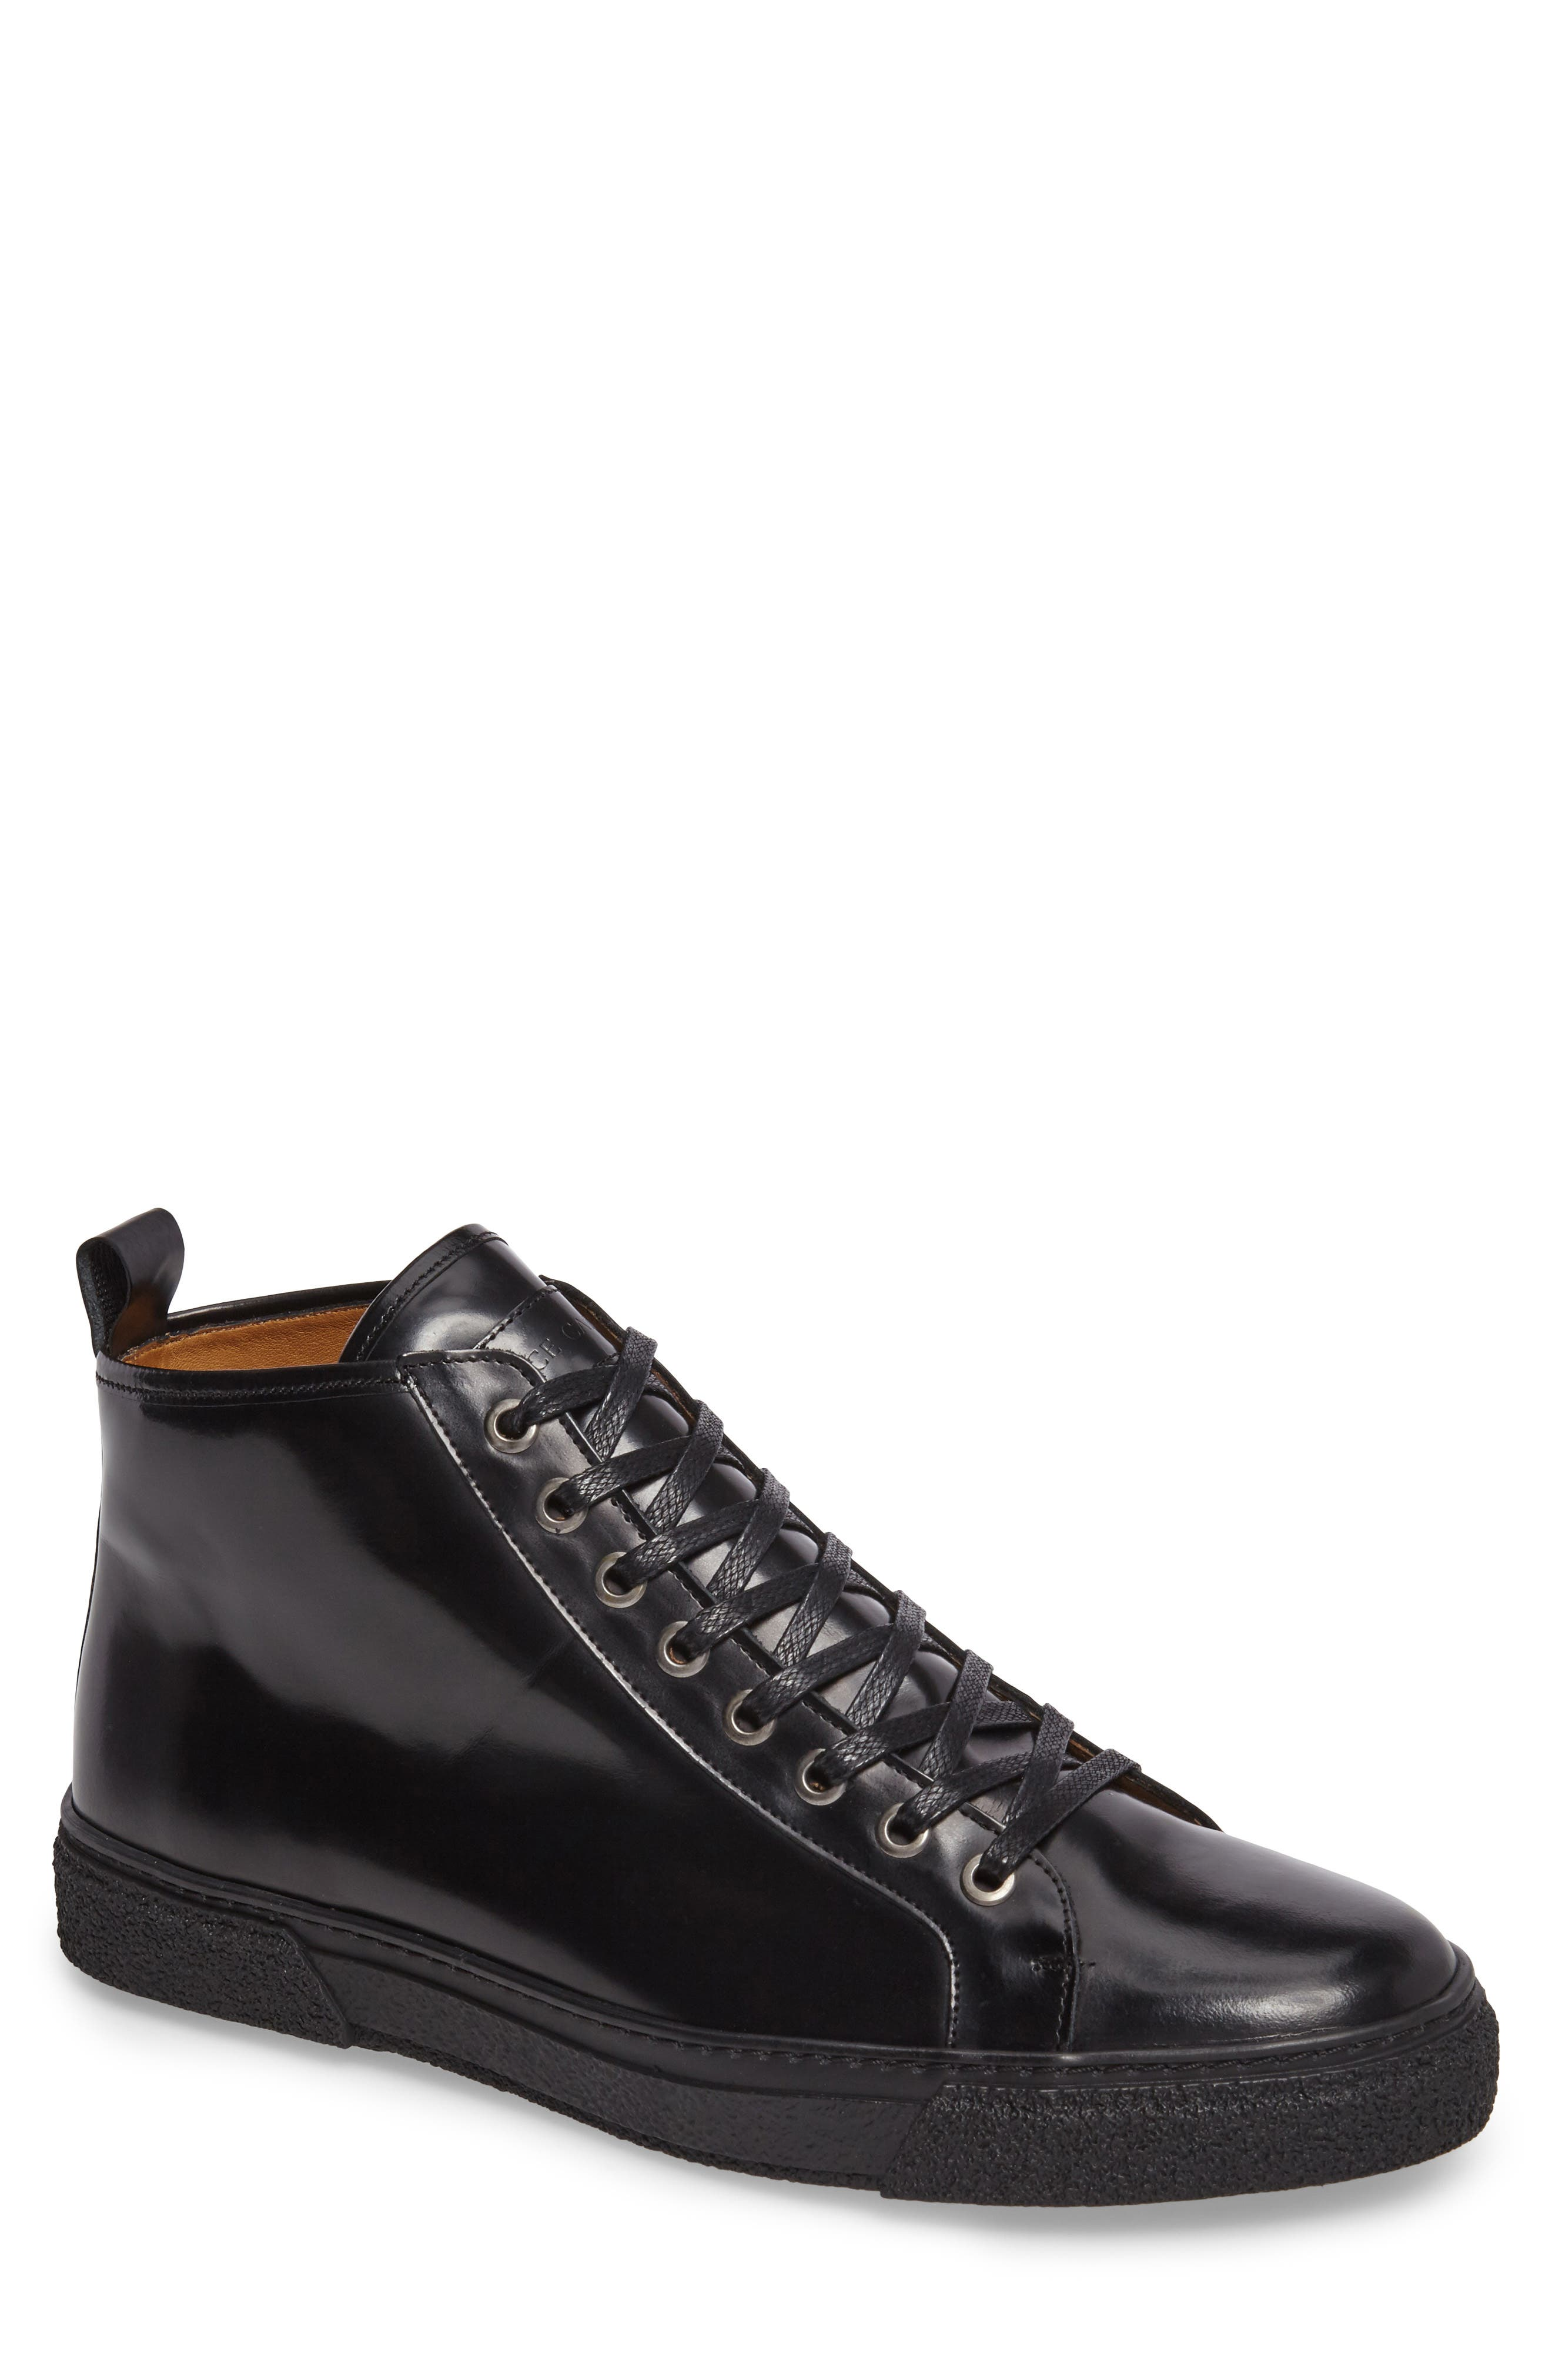 Westan Sneaker,                         Main,                         color, BLACK LEATHER